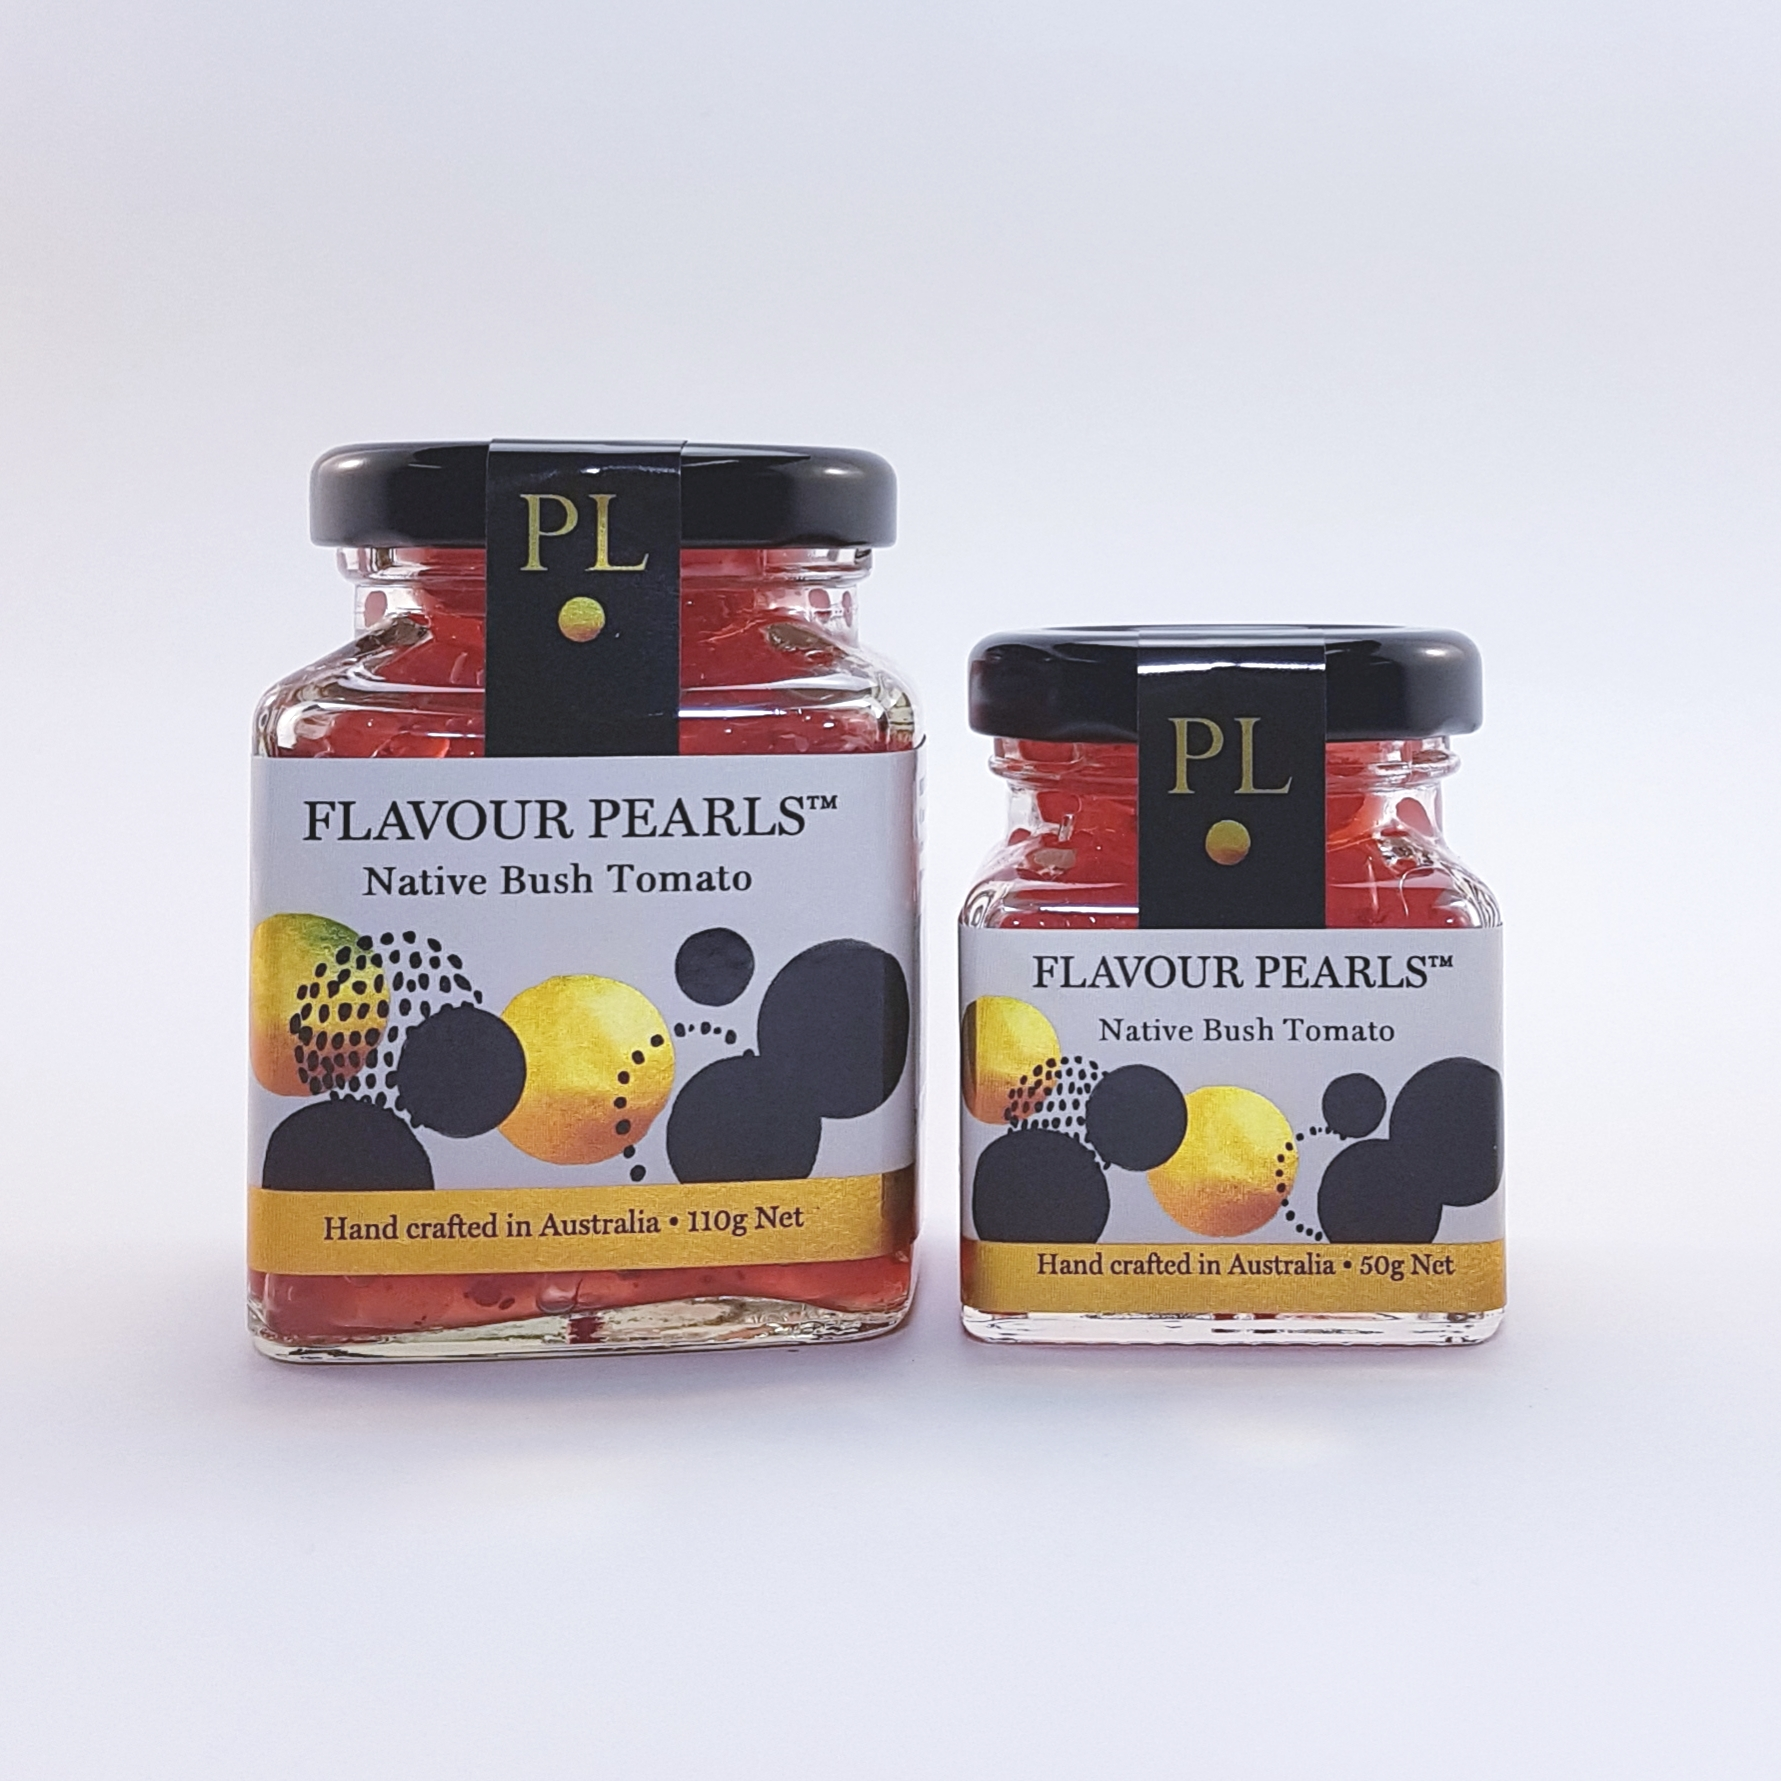 Native Bush Tomato Flavour Pearls 110g and 50g Jars